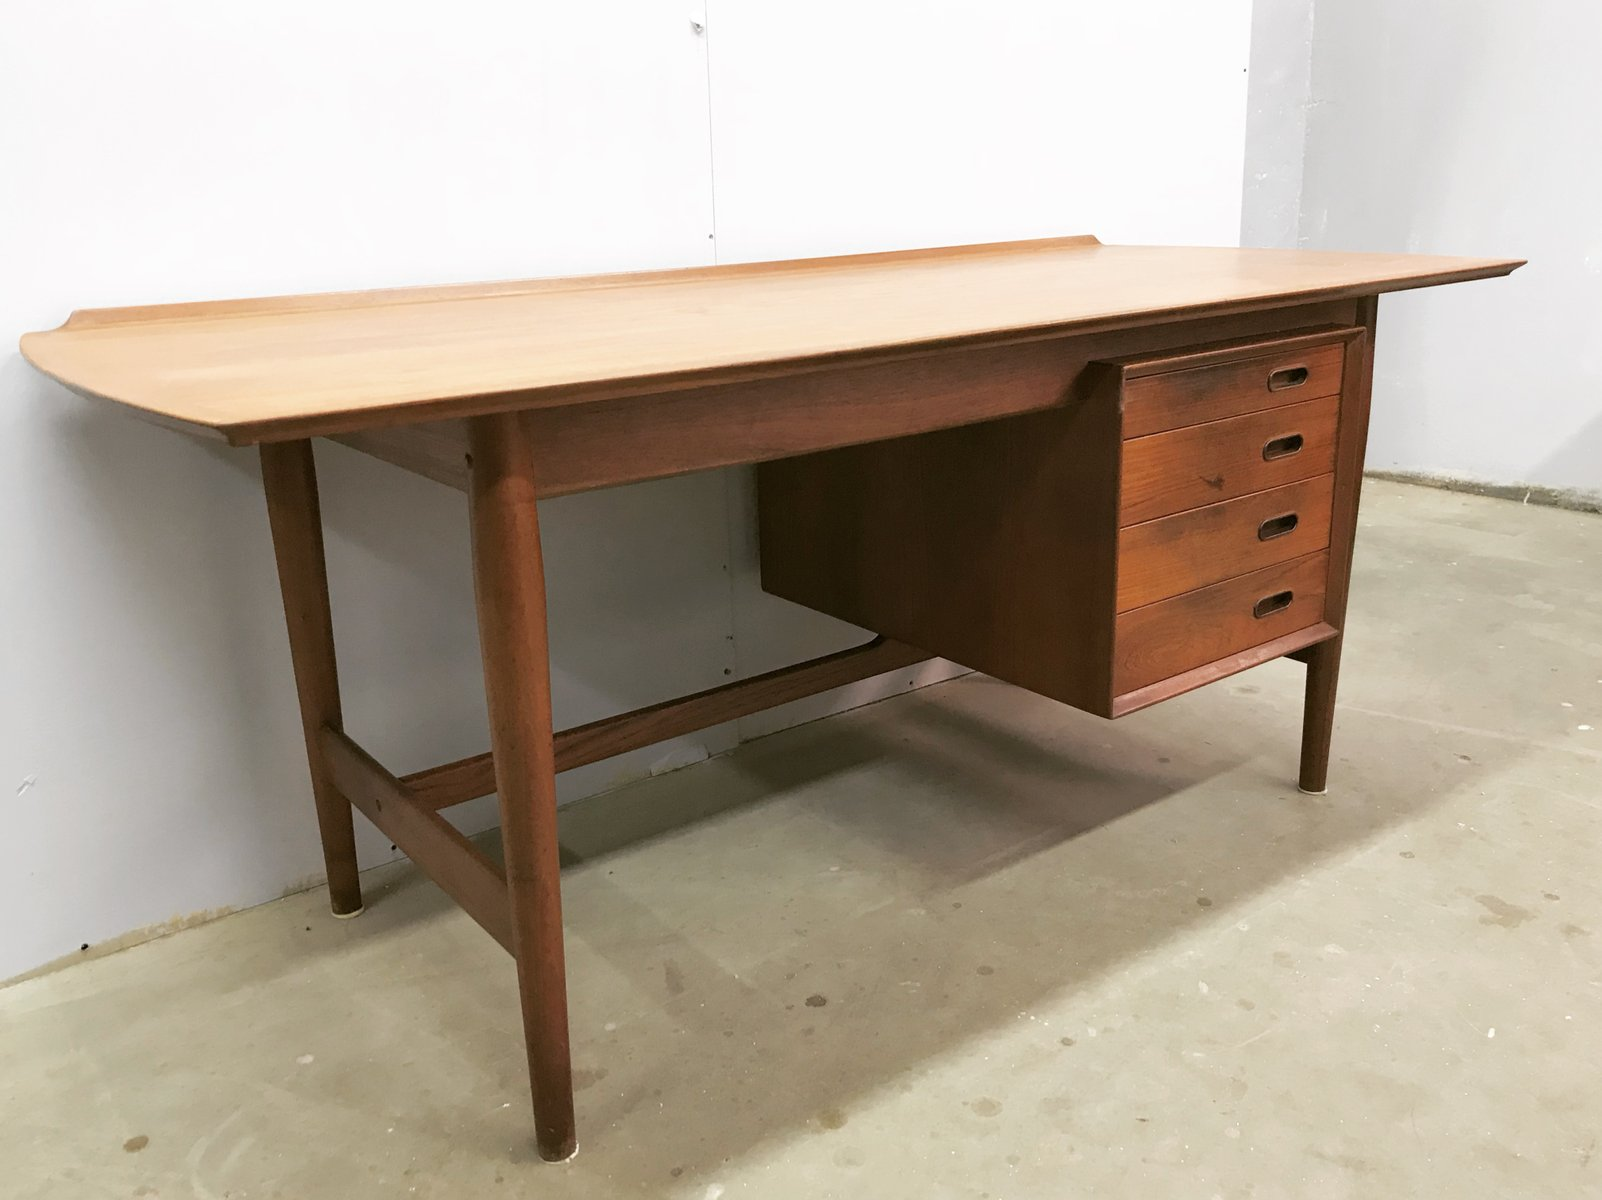 tables writing stylish sleek case modern harry by ostergaard listings designed furniture teak pieces desk danish desks